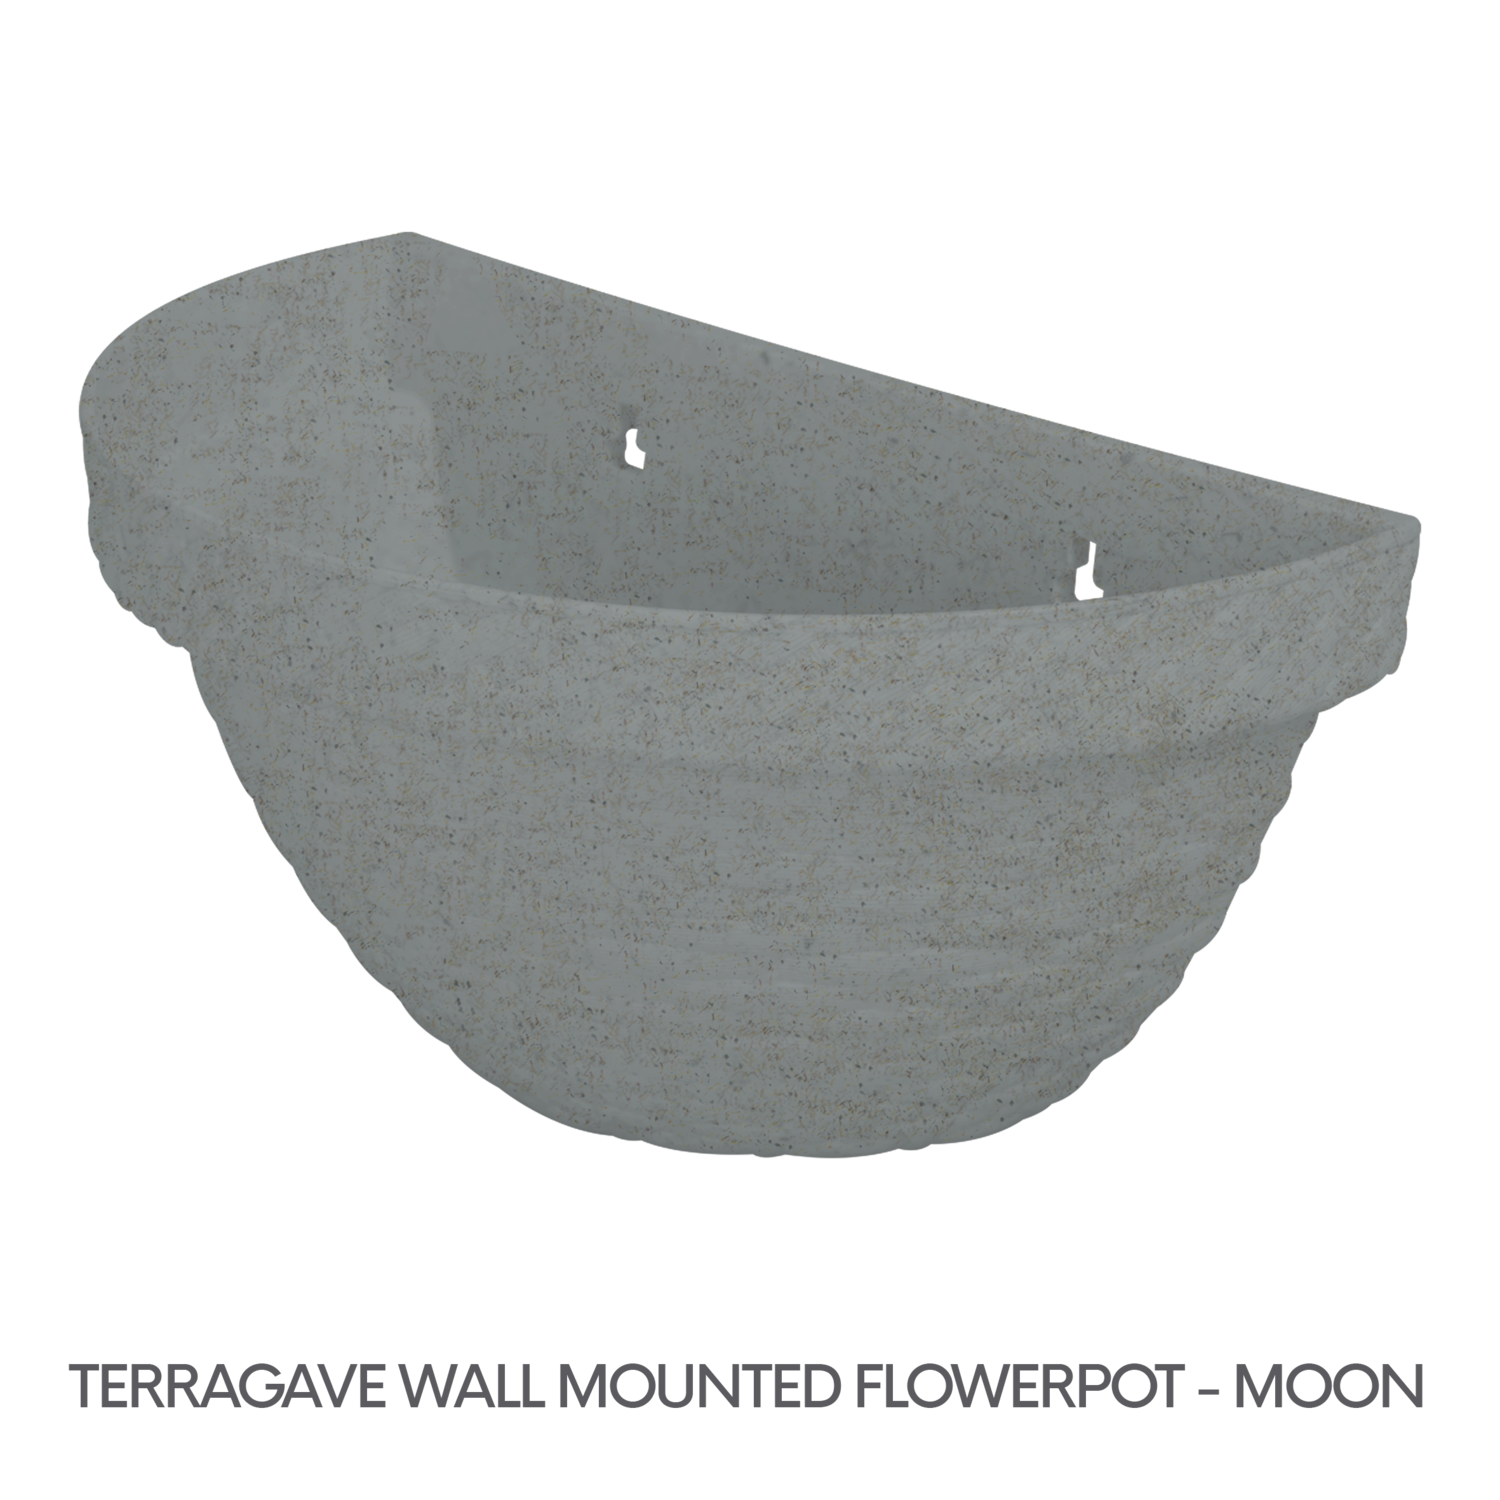 6 TERRAGAVE WALL MOUNTED FLOWERPOT - MOON.png